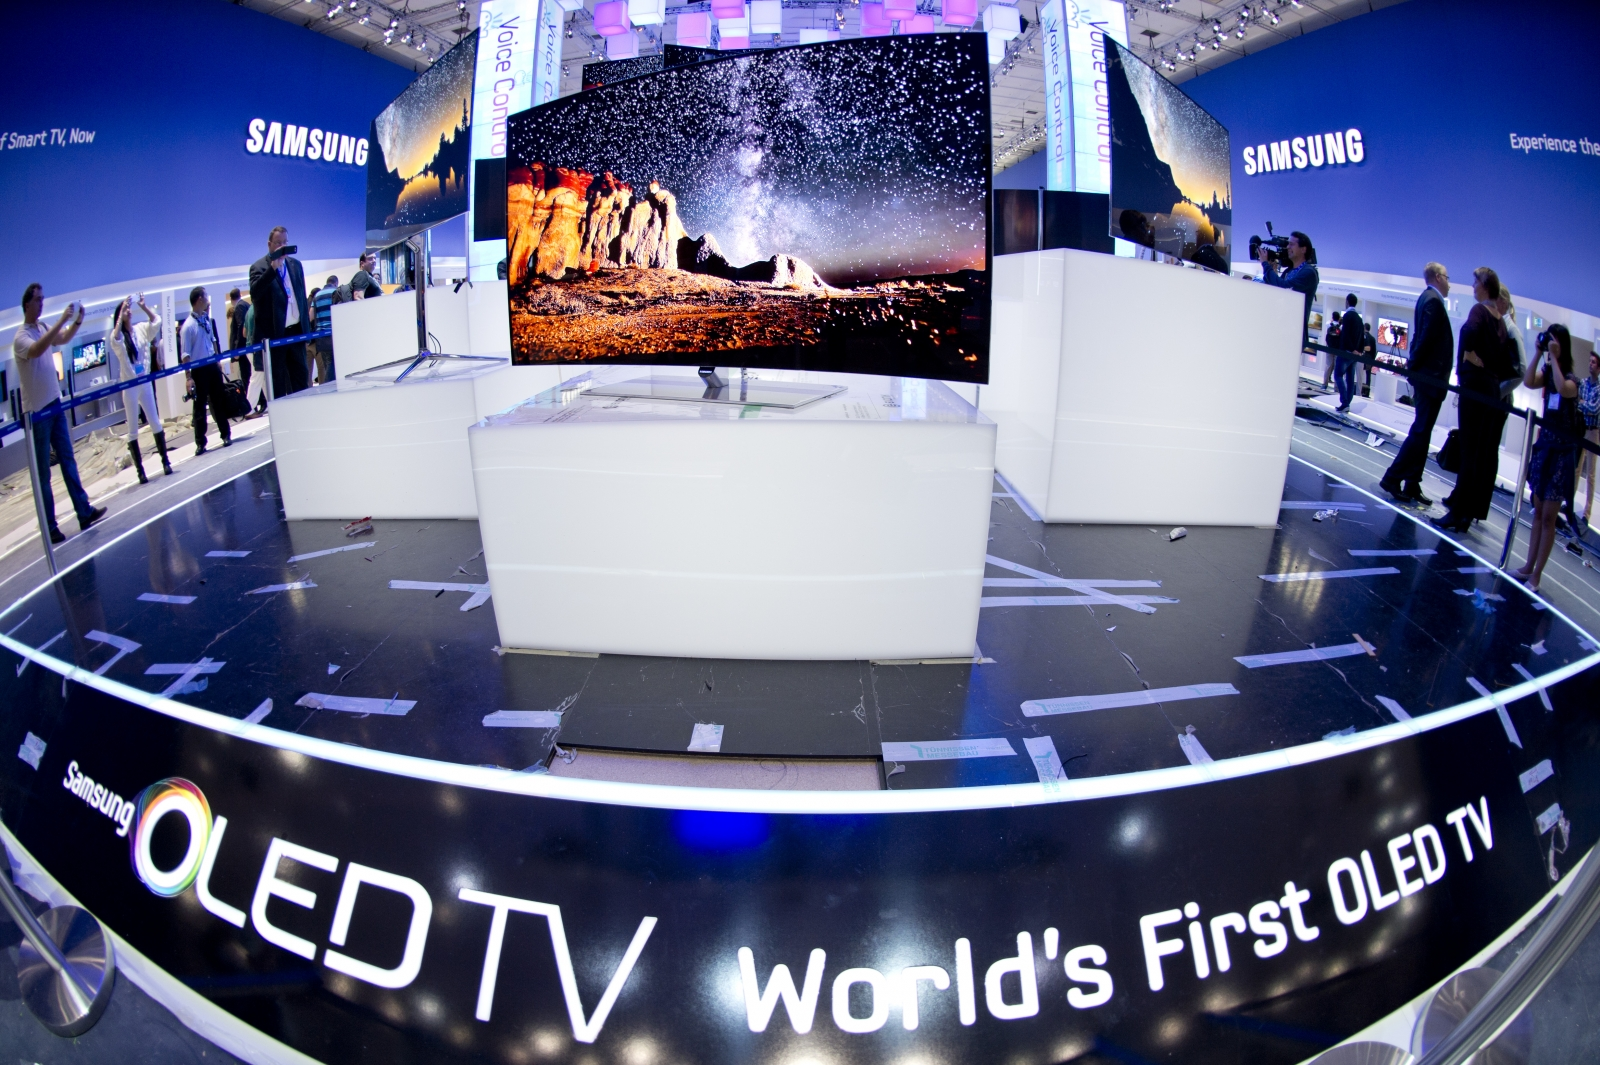 Samsung spins off OLED business